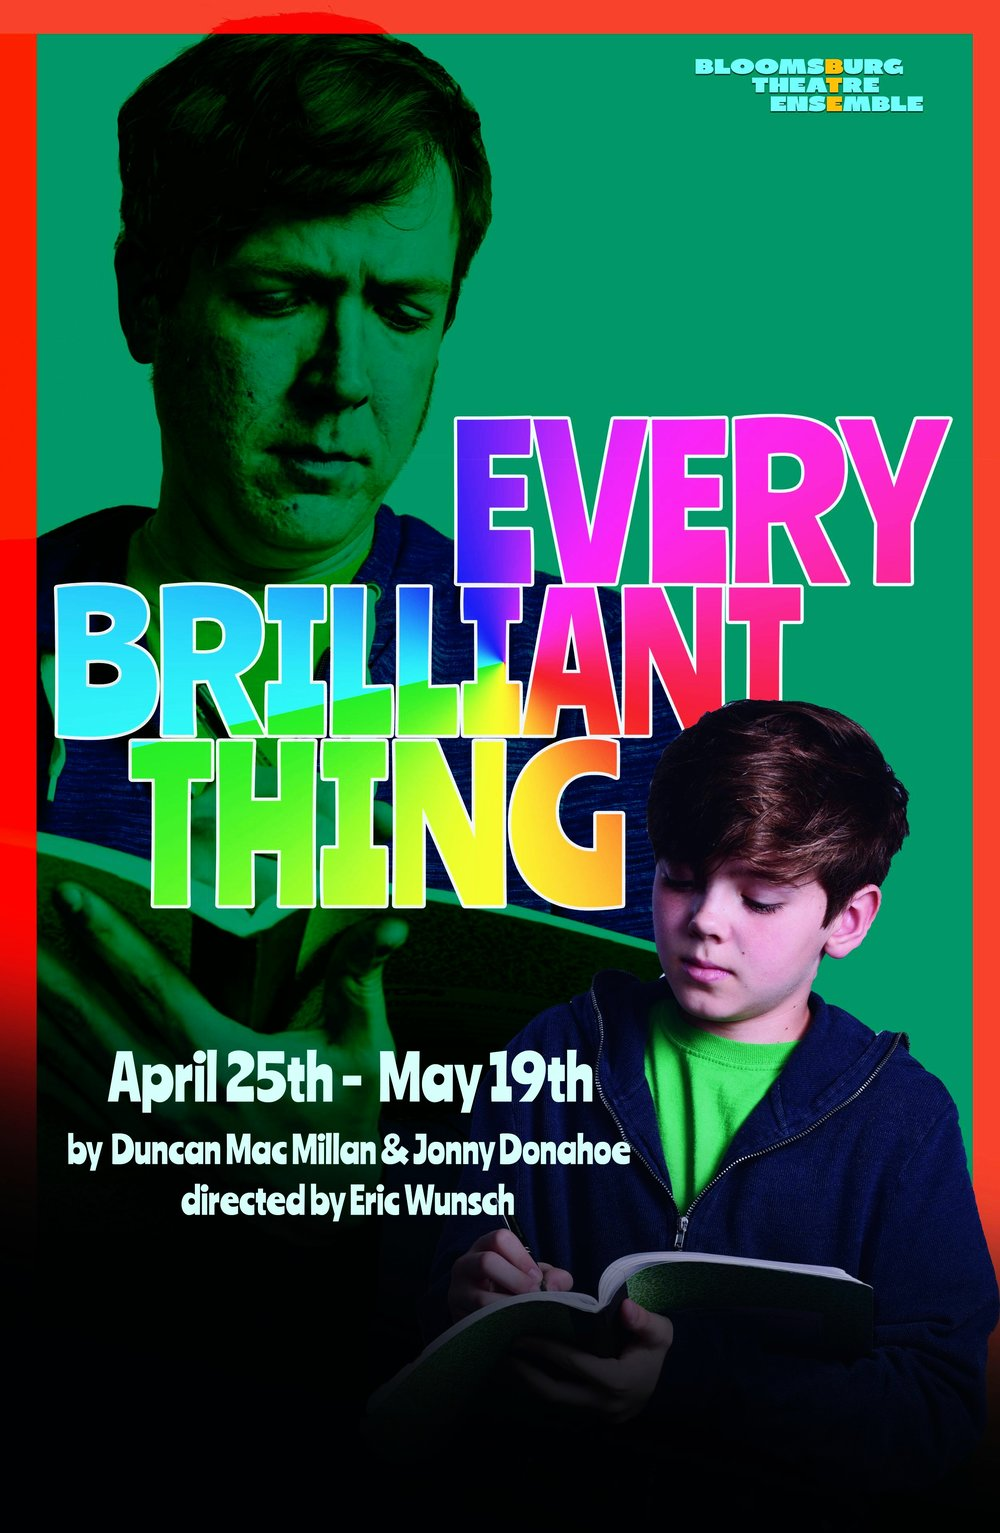 Every Brilliant Thing Small.jpg